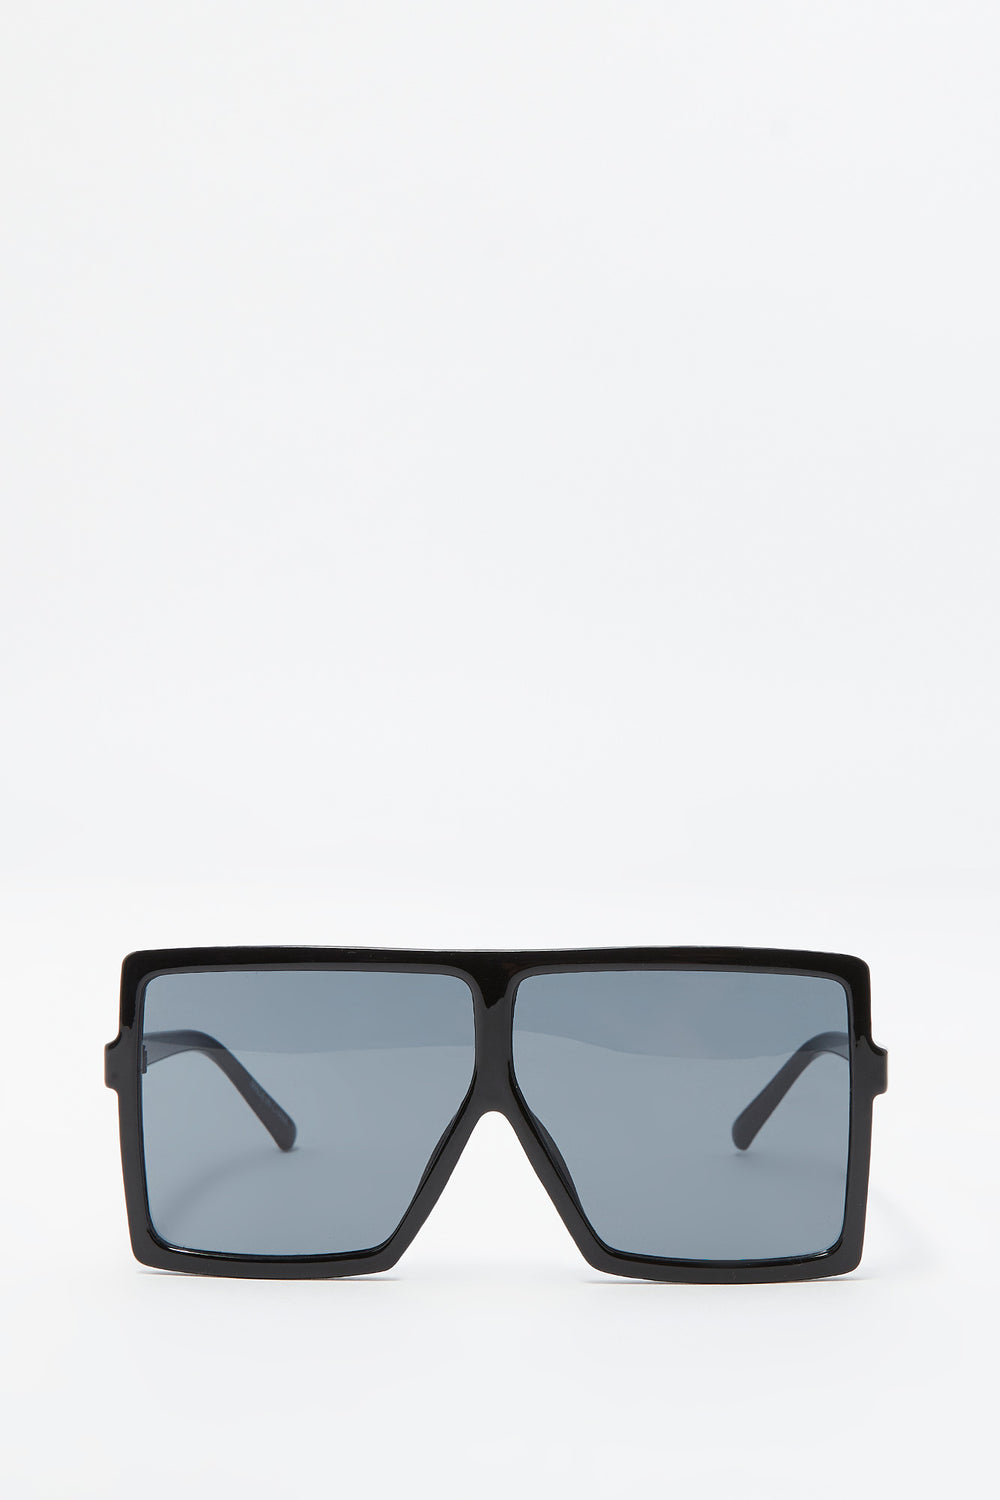 Oversized Flat Top Square Frame Sunglasses Black